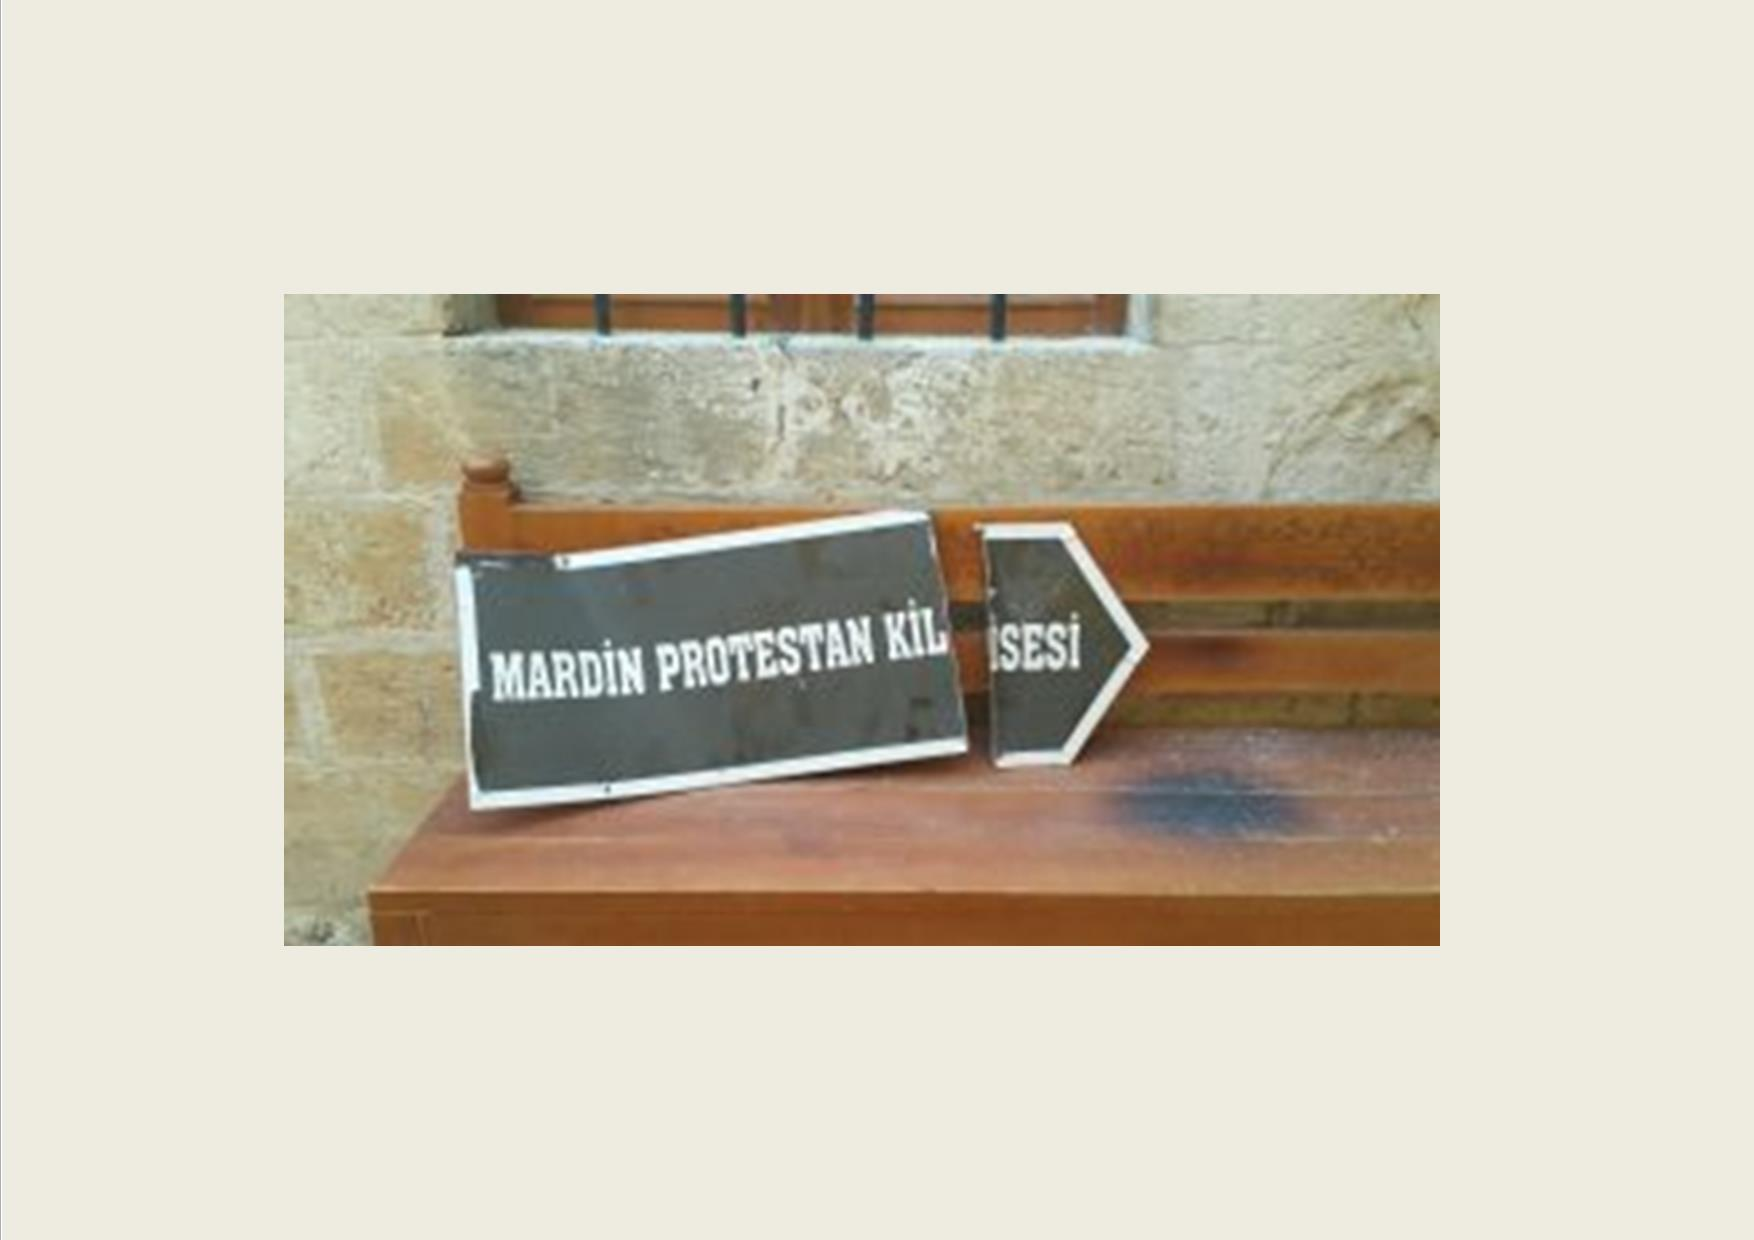 The signboard of the Protestant Church of Mardin was dismantled by person or persons who could not be identified.